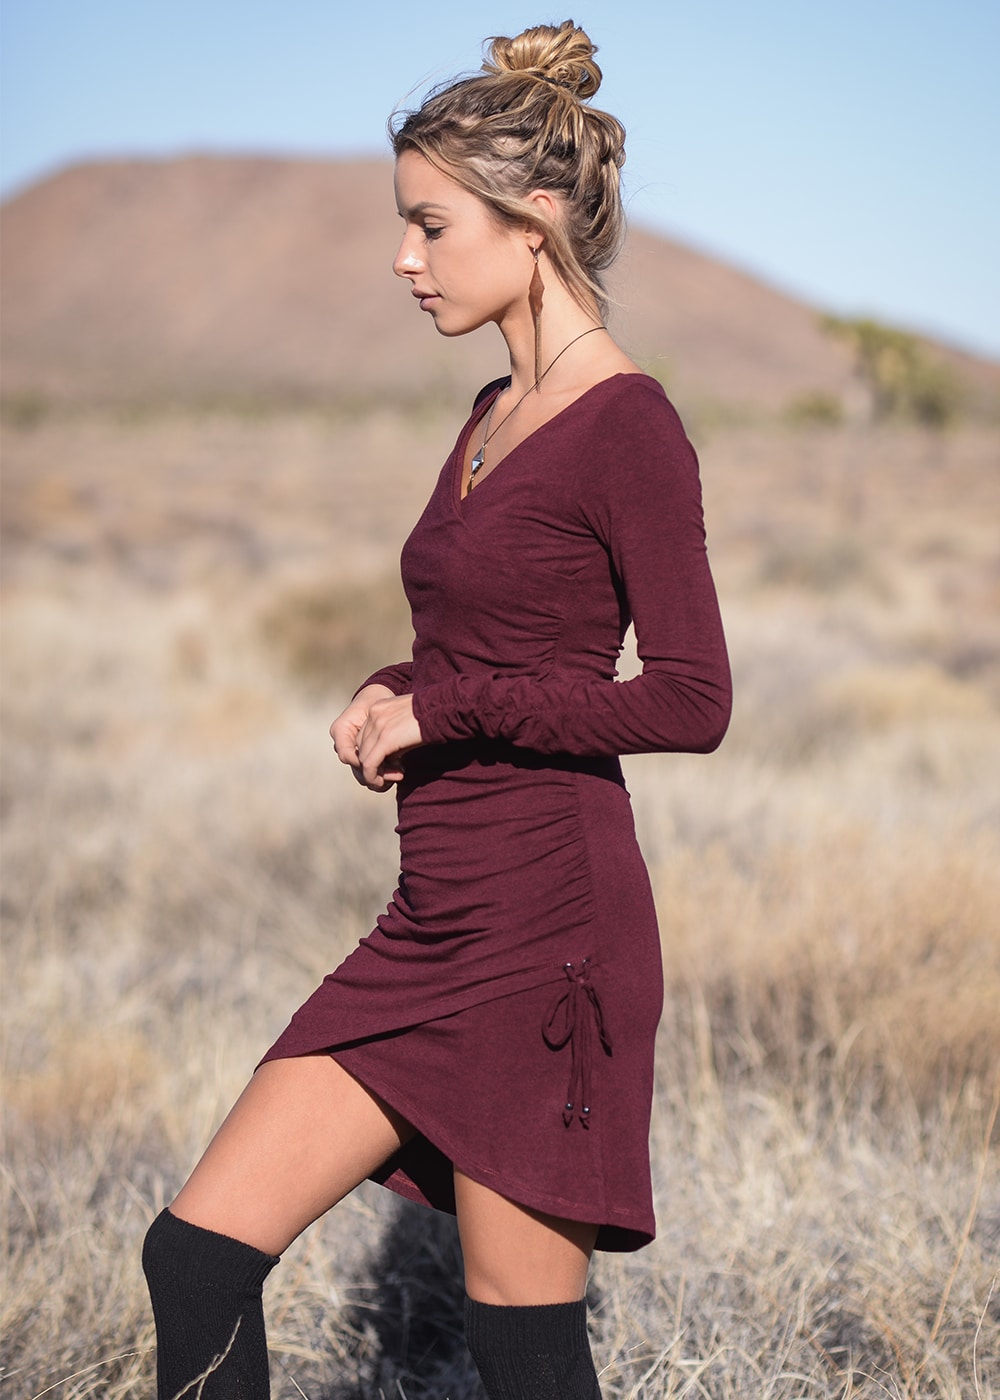 Bamboo and Organic Cotton Nostalgia Dress in Red by Nomads Hemp Wear Side View